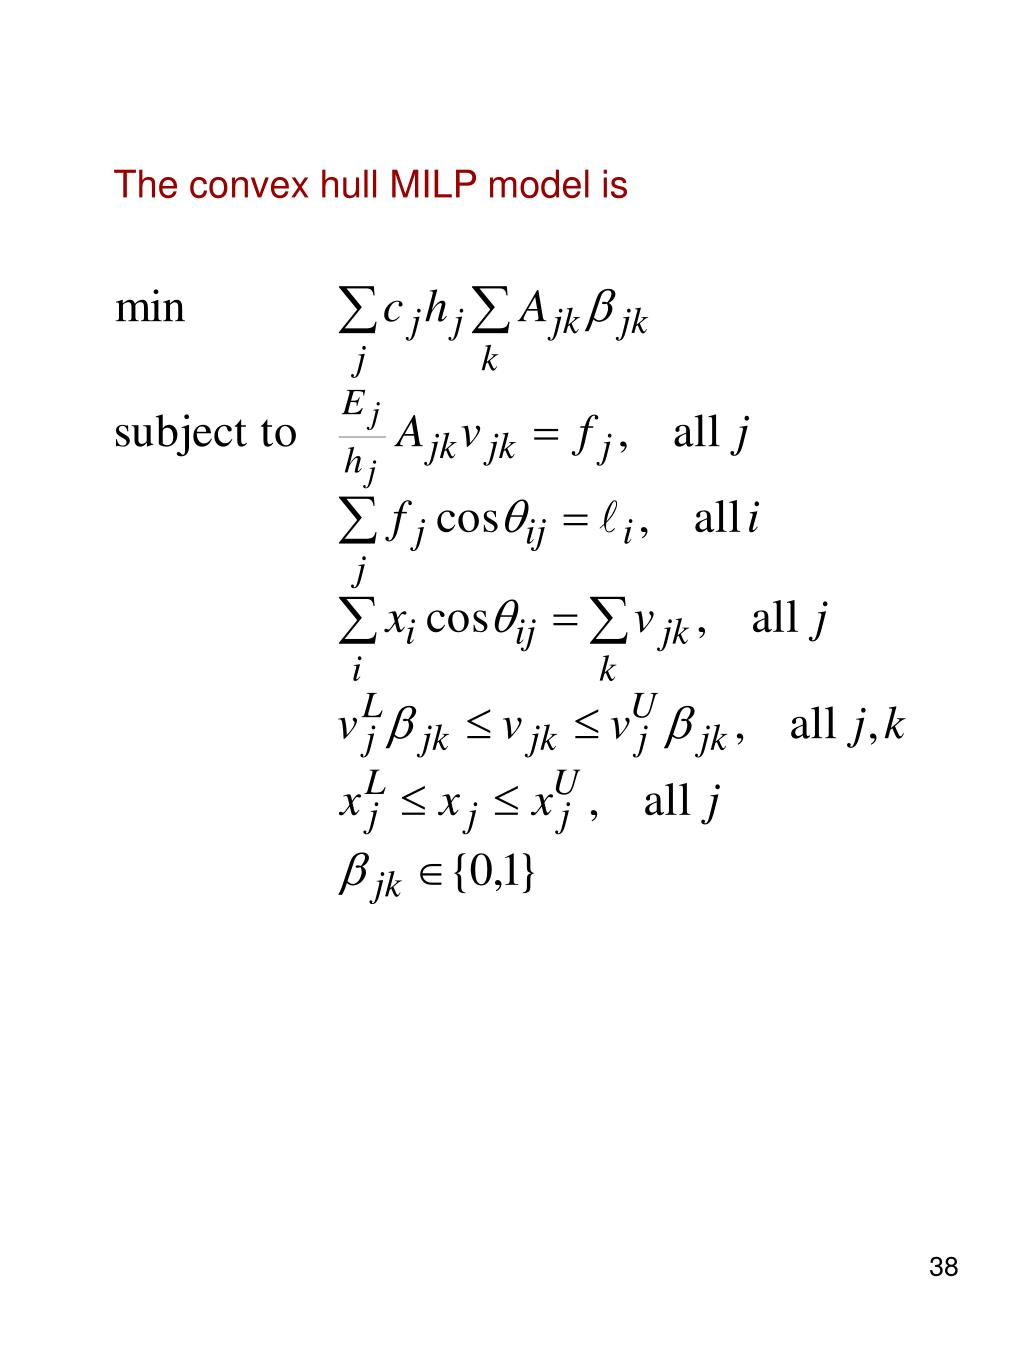 The convex hull MILP model is